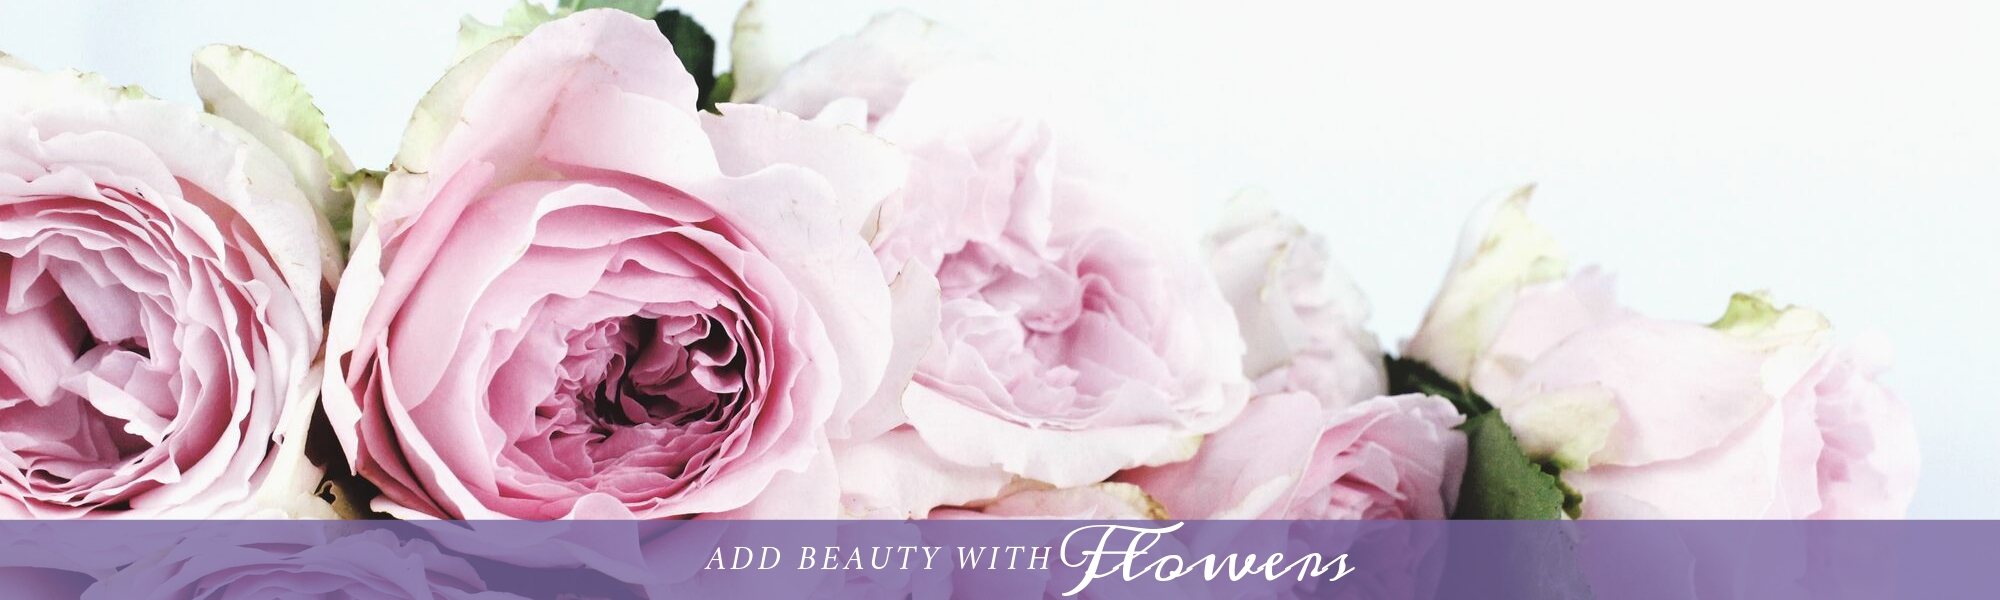 add beauty with flowers!